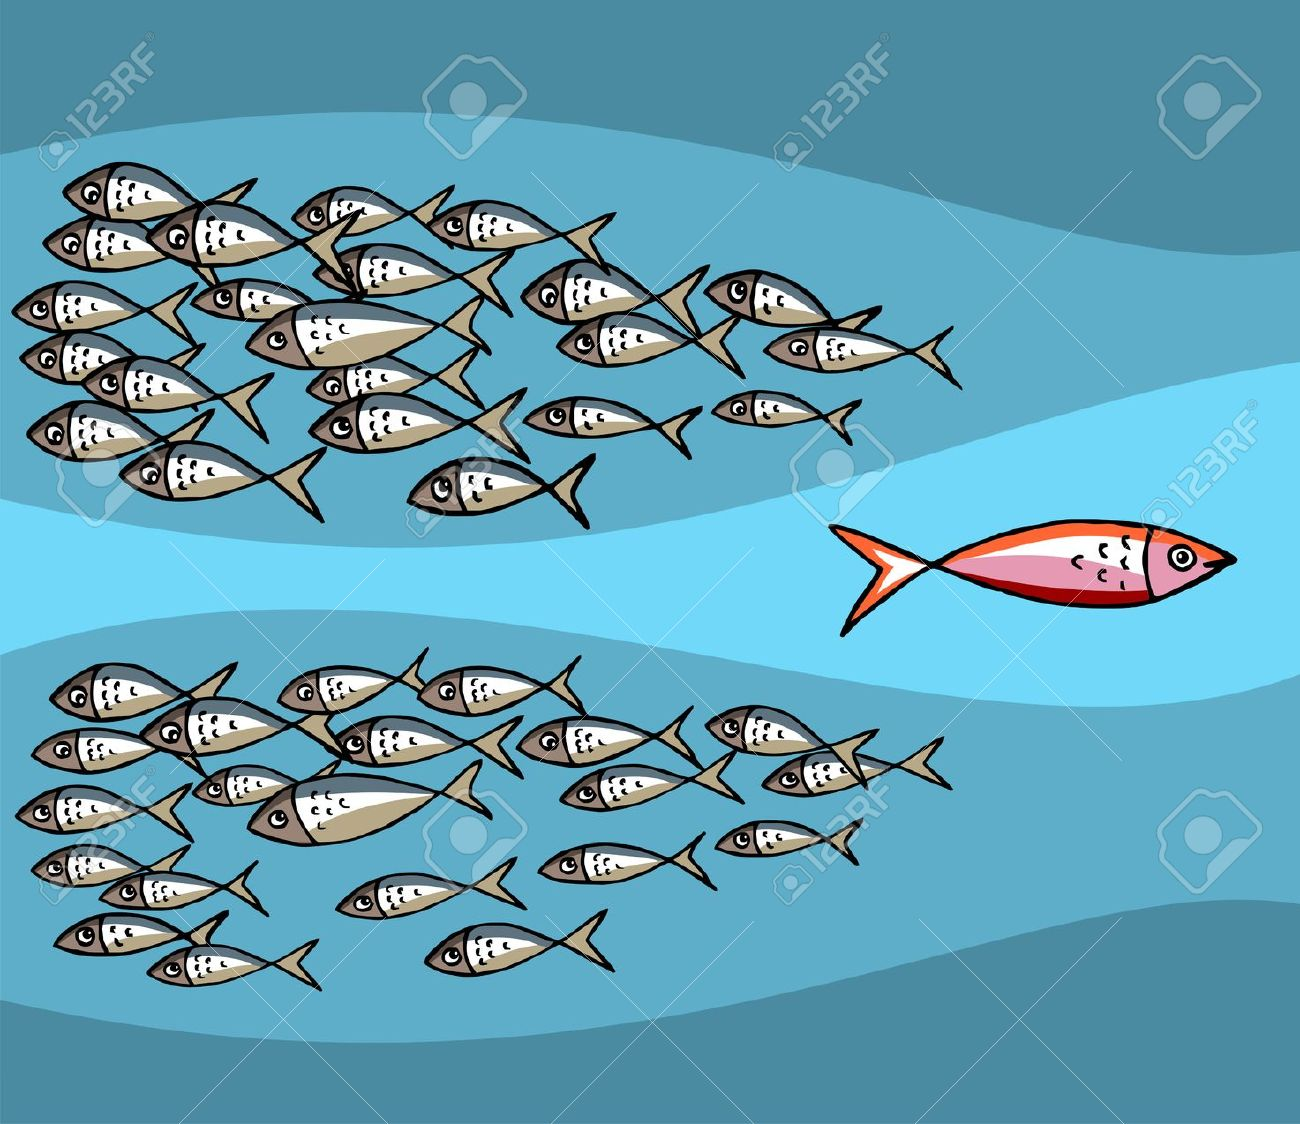 Different Fish Swimming Against The Tide. Royalty Free Cliparts.